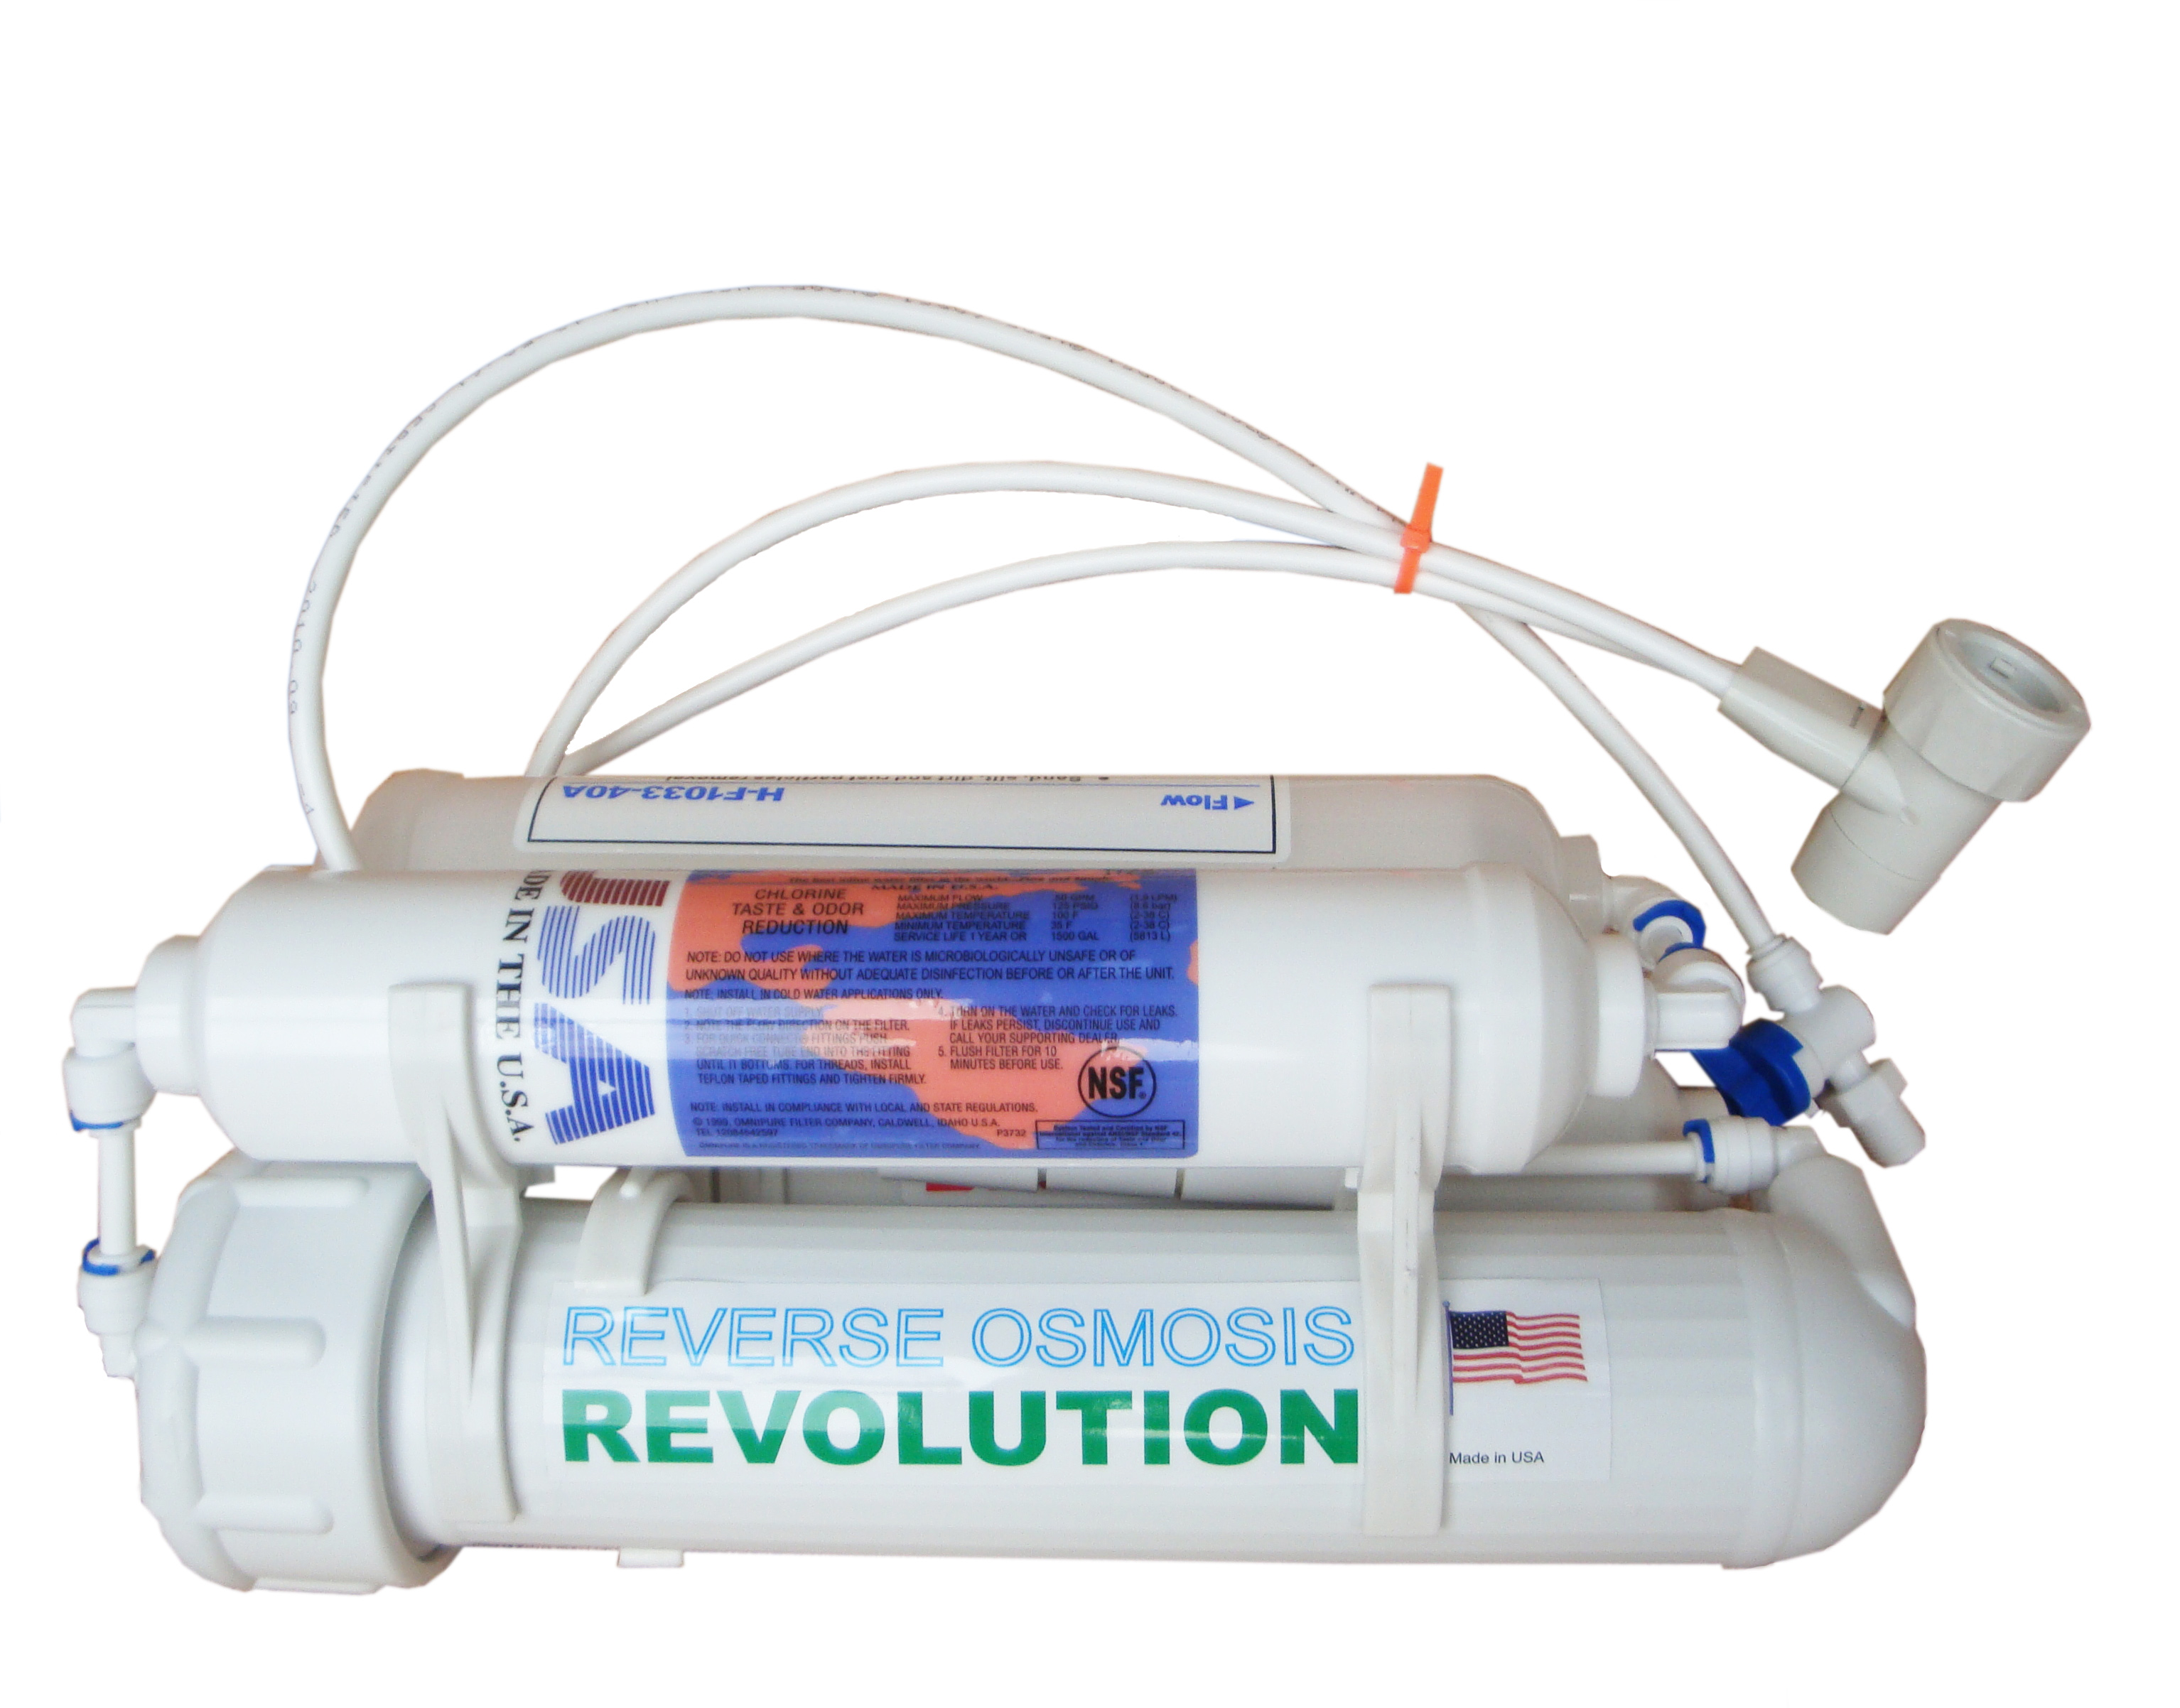 Aquarium 4 stage Reverse Osmosis Revolution Water Purification